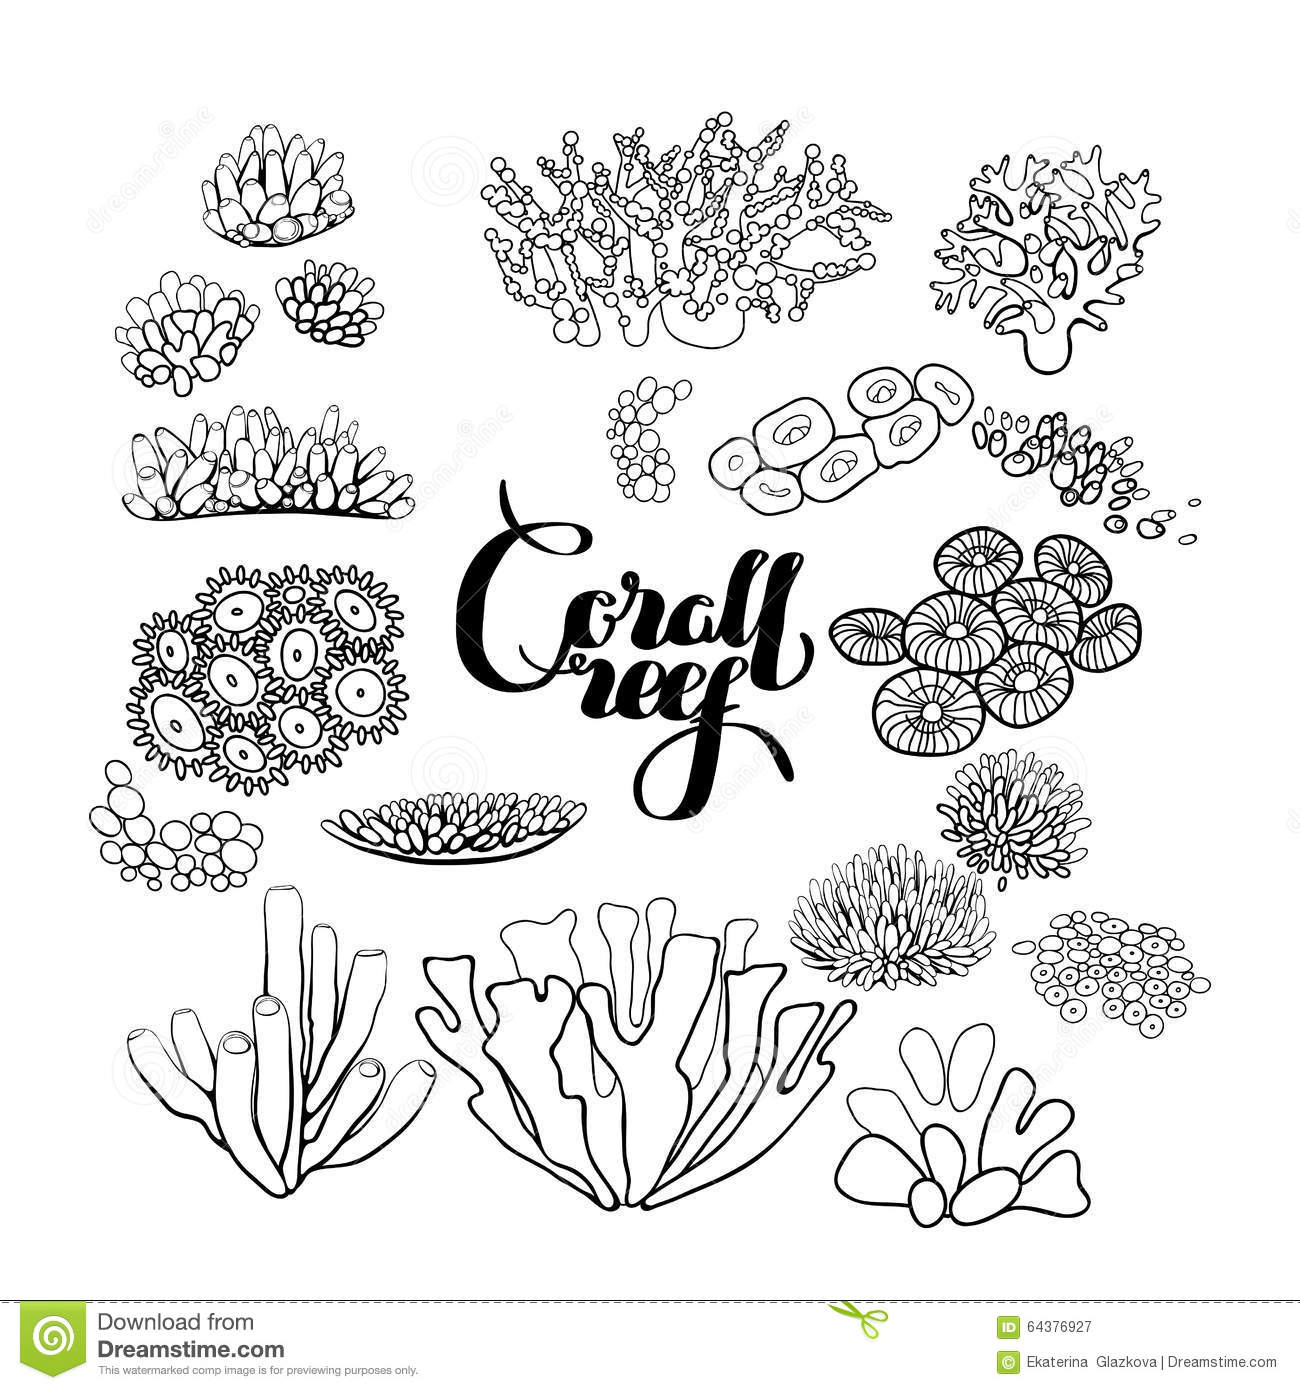 ocean plants coloring pages free - photo#22